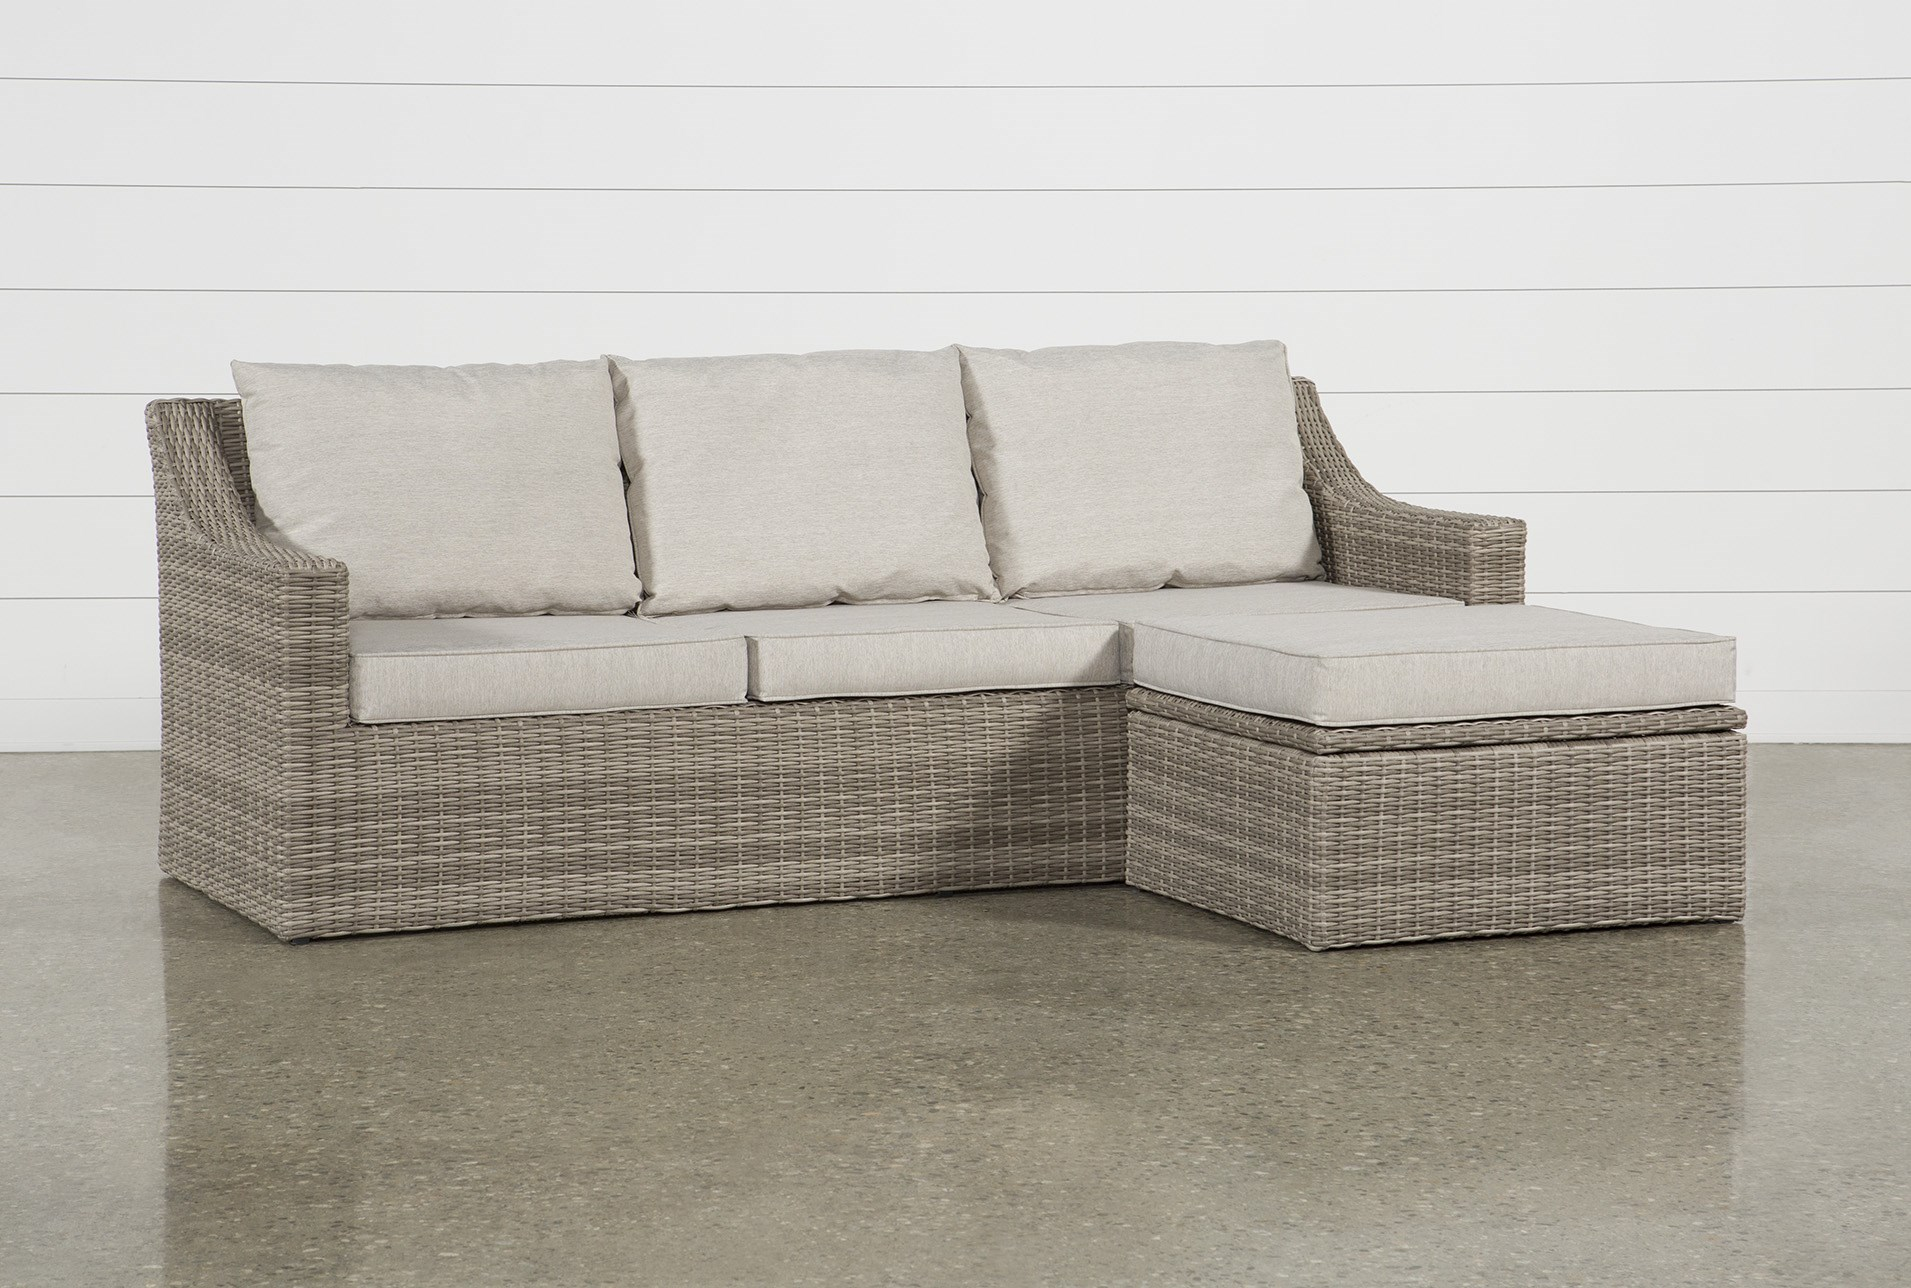 Outdoor Positano Reversible Sofa Chaise With Storage Ottoman Qty 1 Has Been Successfully Added To Your Cart